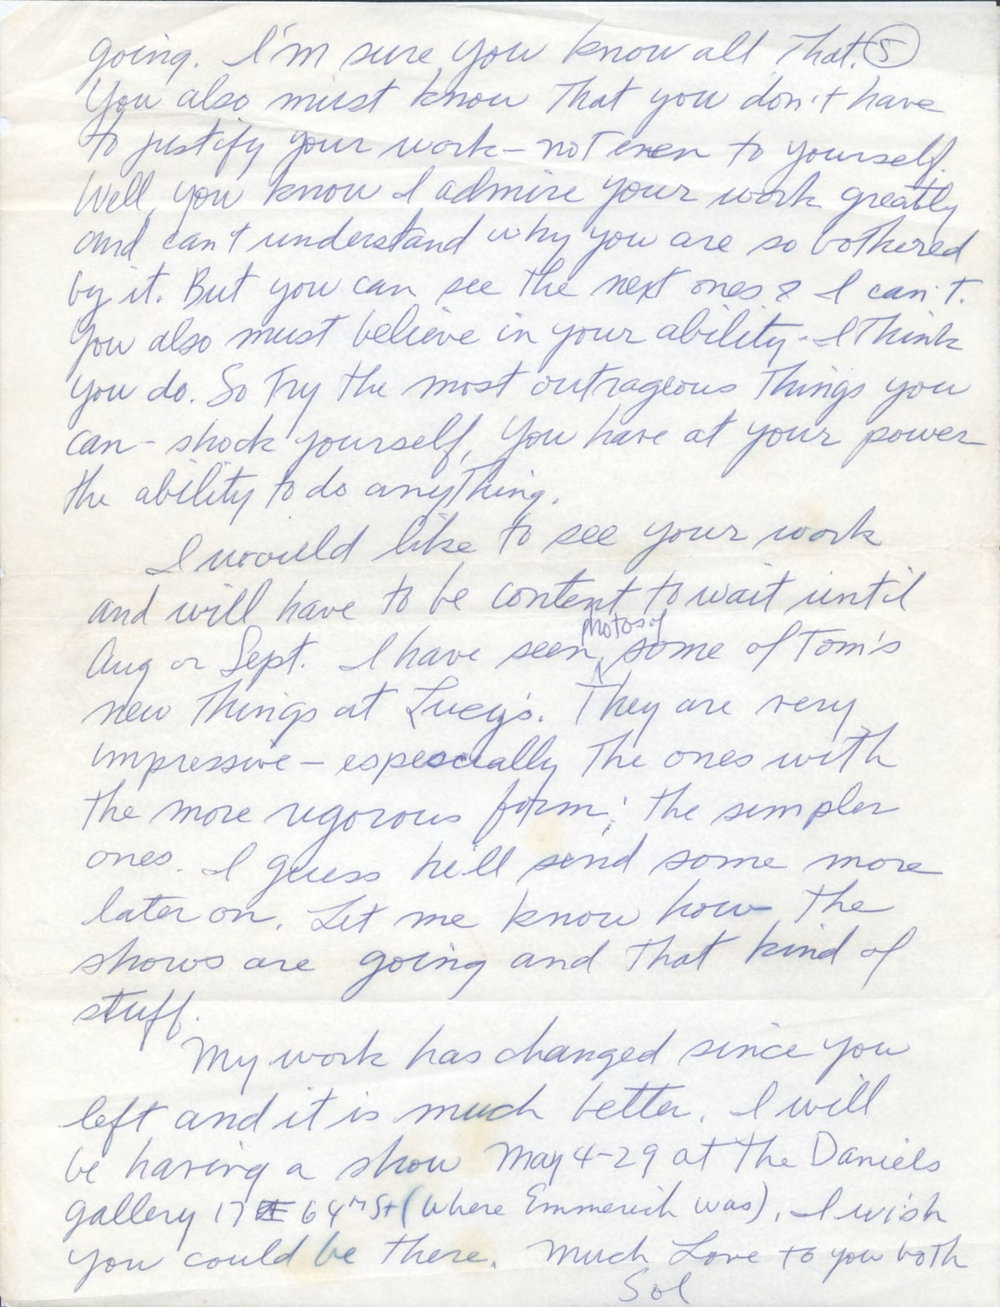 Sol-LeWitts-Letter-to-Eva-Hesse-Page-5.jpg